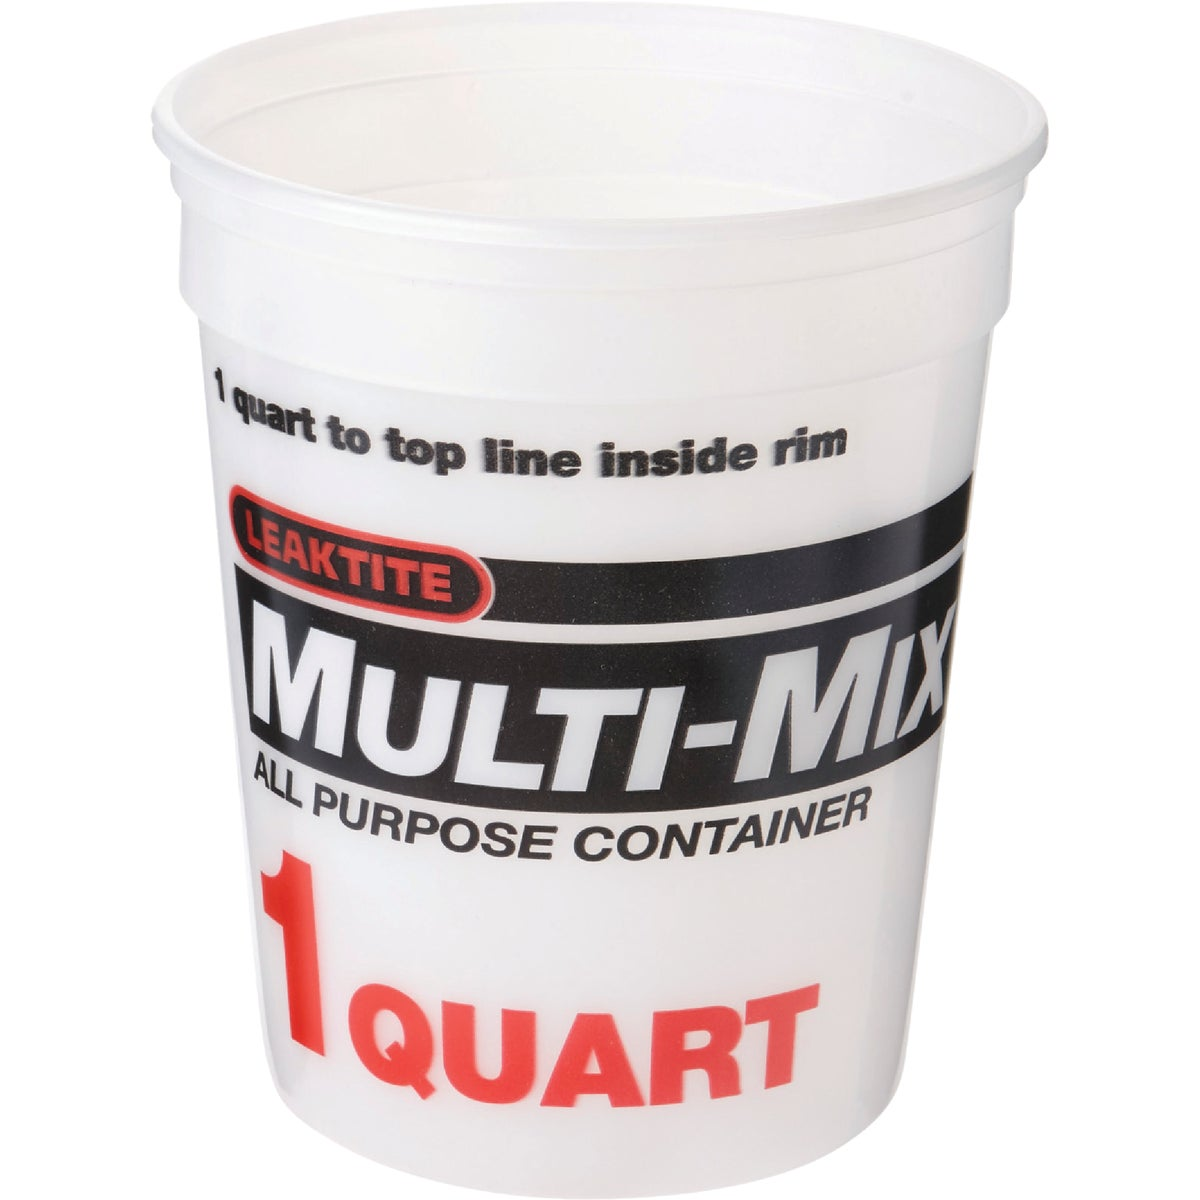 1QT MIXING CONTAINER